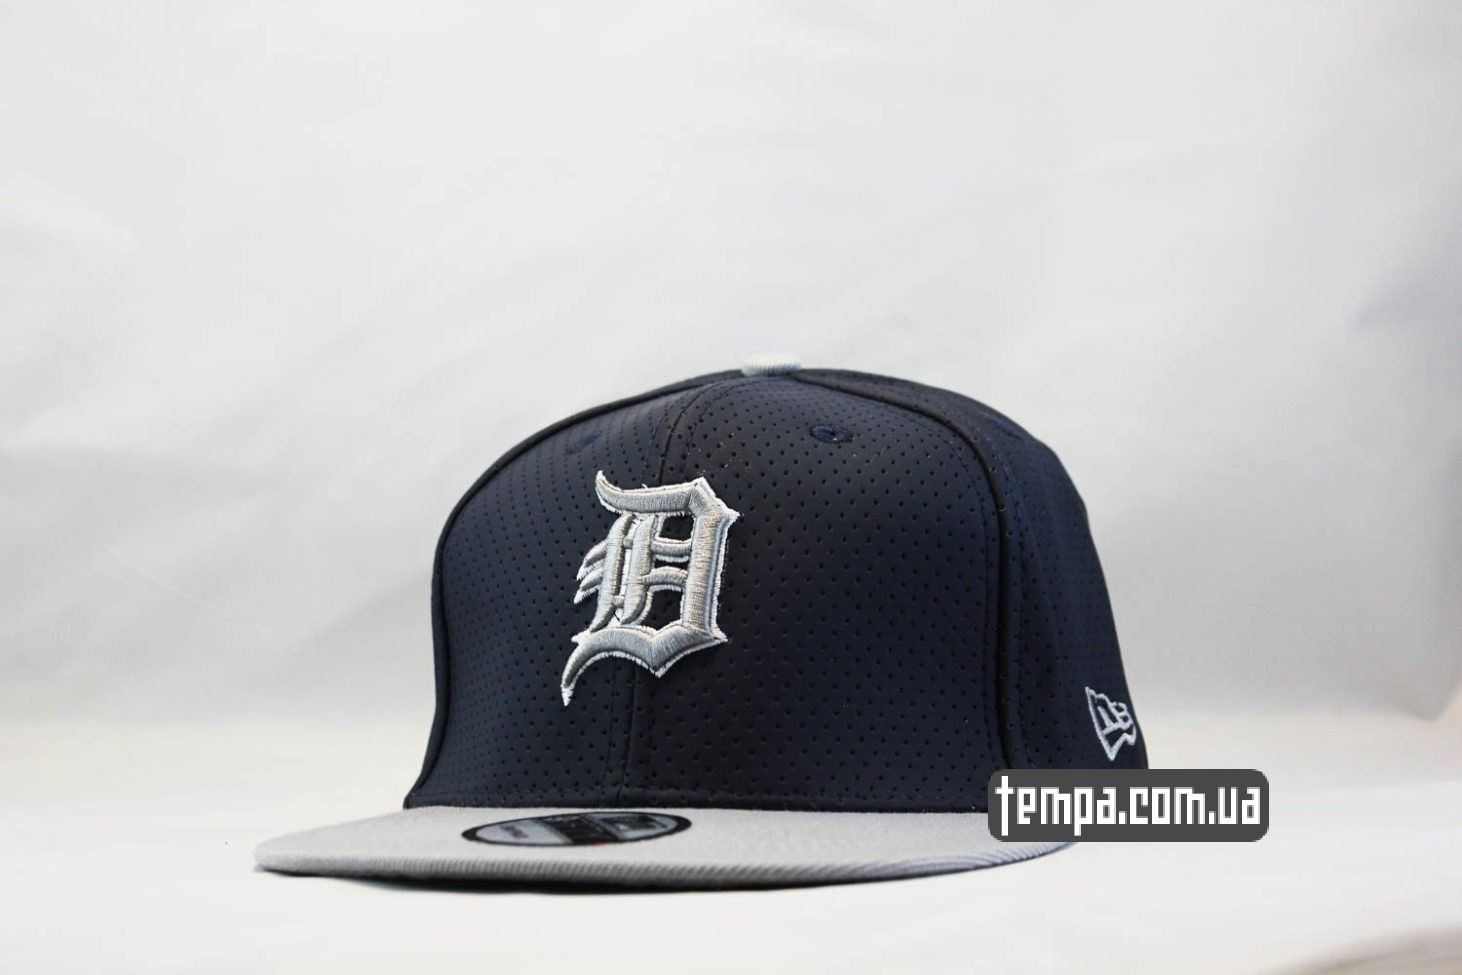 кепка snapback DETROID new era trucker 9fifty с сеточкой